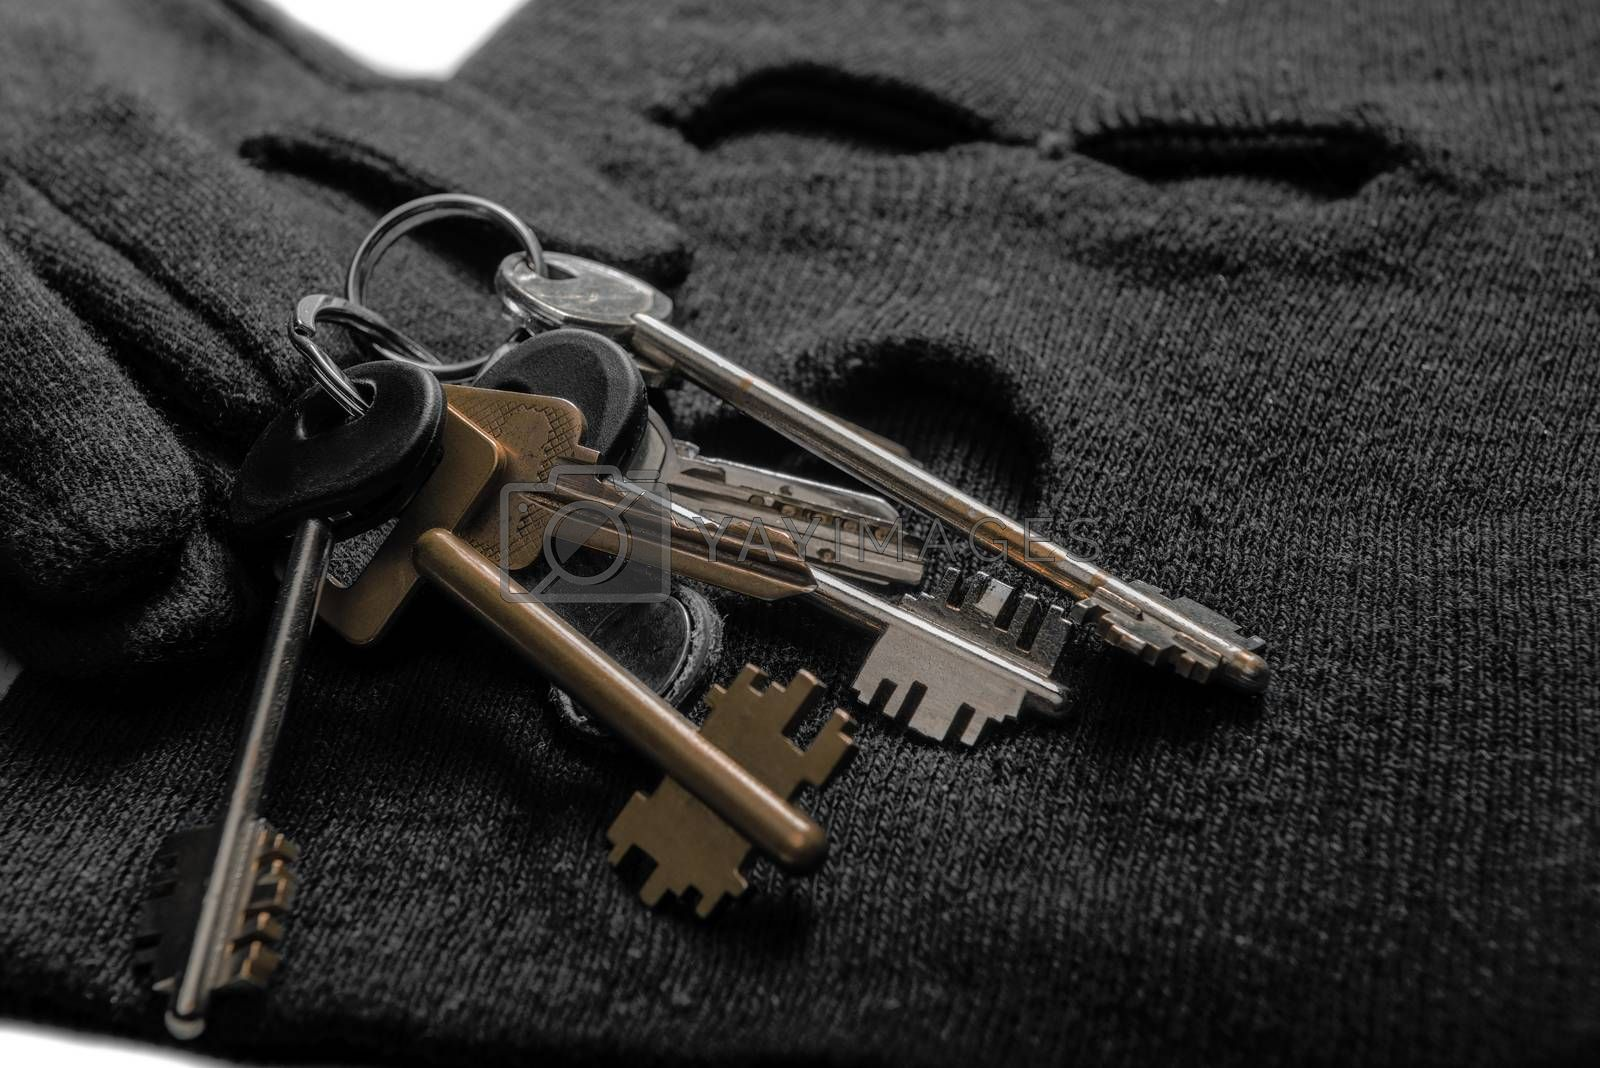 keys of the robber for opening locks, balaclava and gloves close by Labunskiy K.